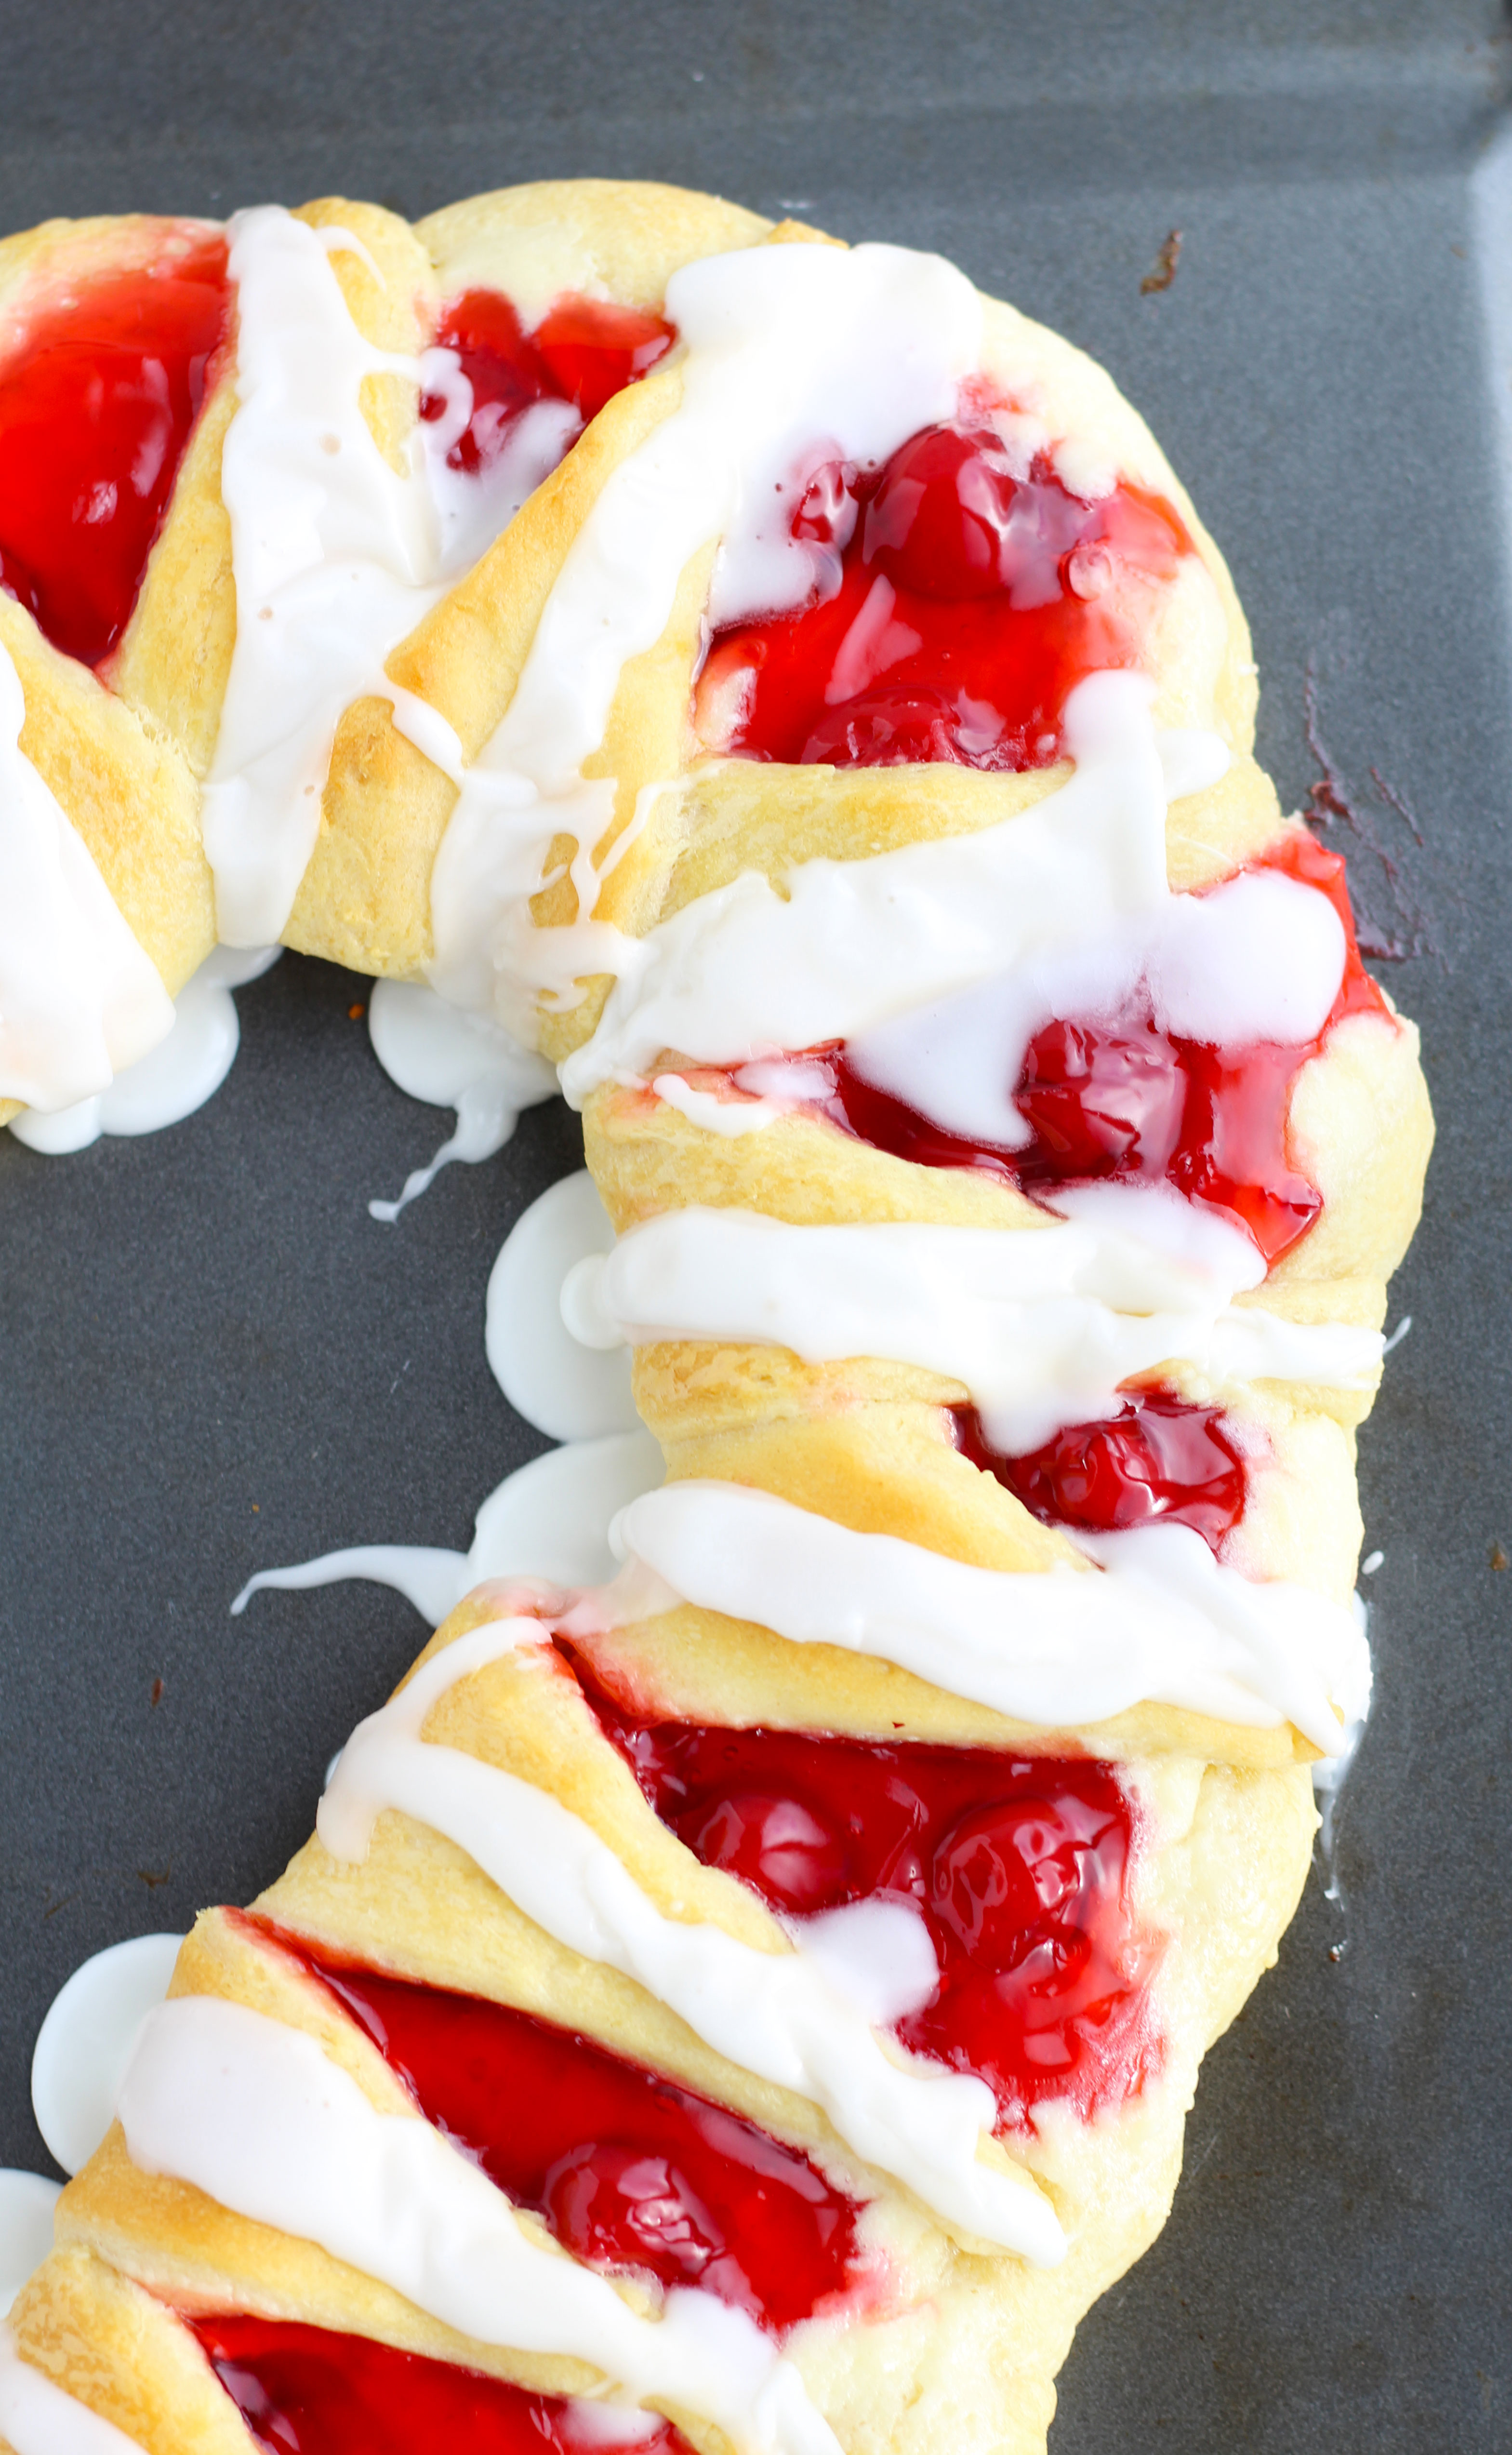 candy-cane-crescent-roll-breakfast-pastry-2